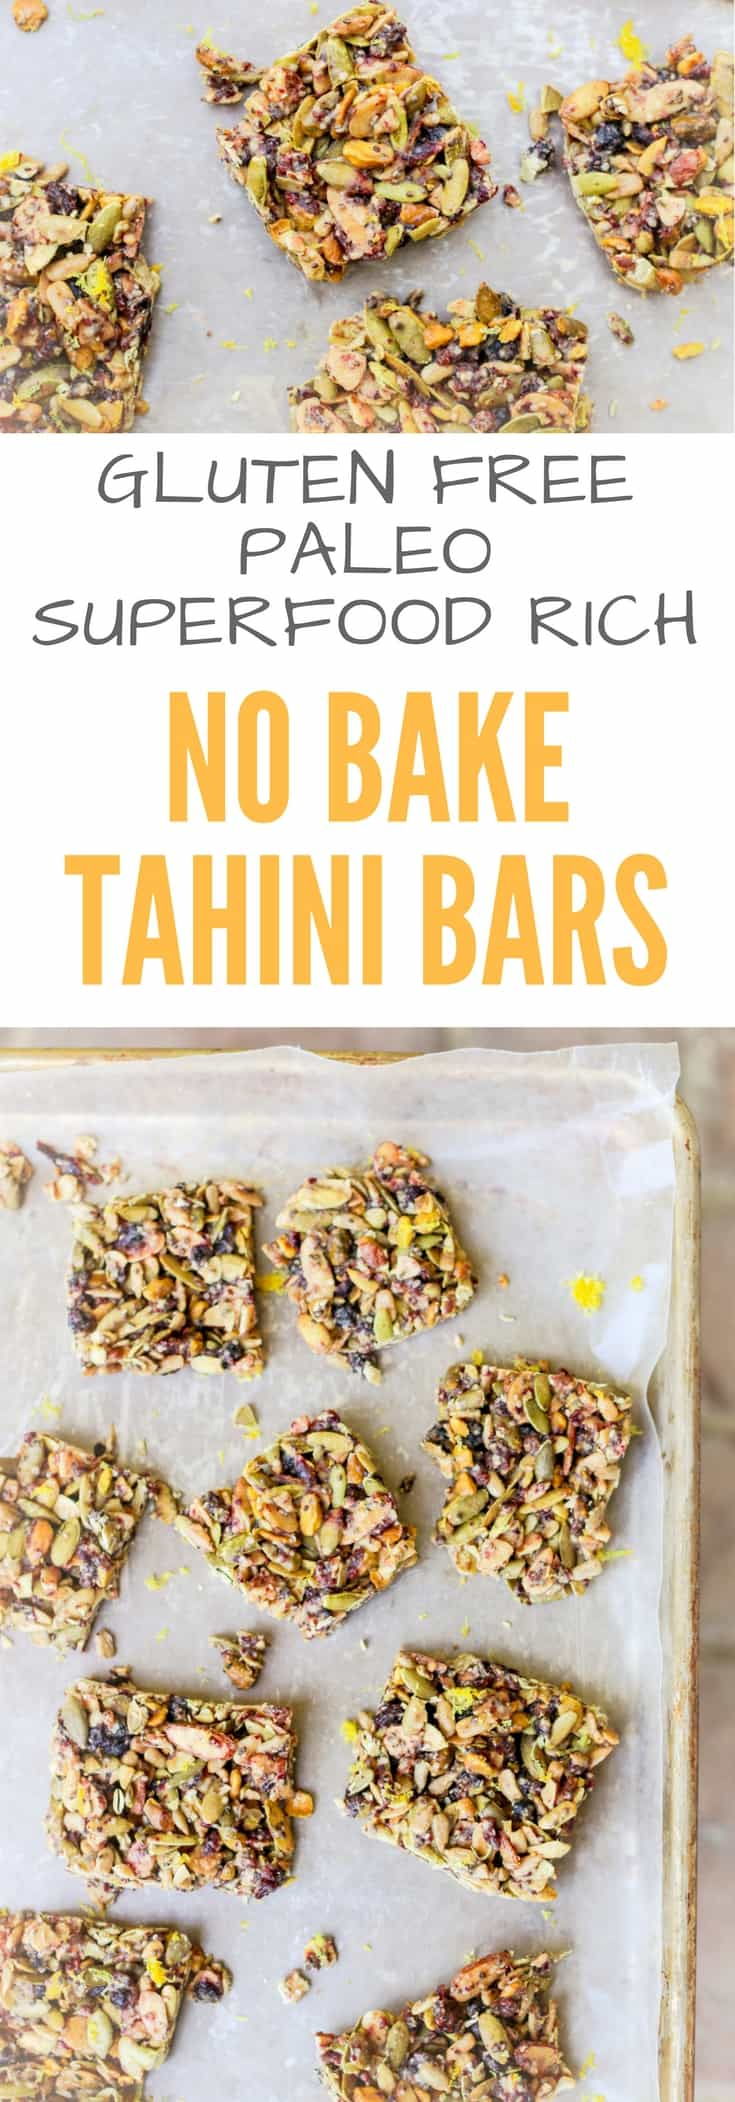 No Bake Tahini Bars Recipe - Gluten Free, Paleo, Meal Planning Breakfast Bars packed with superfoods